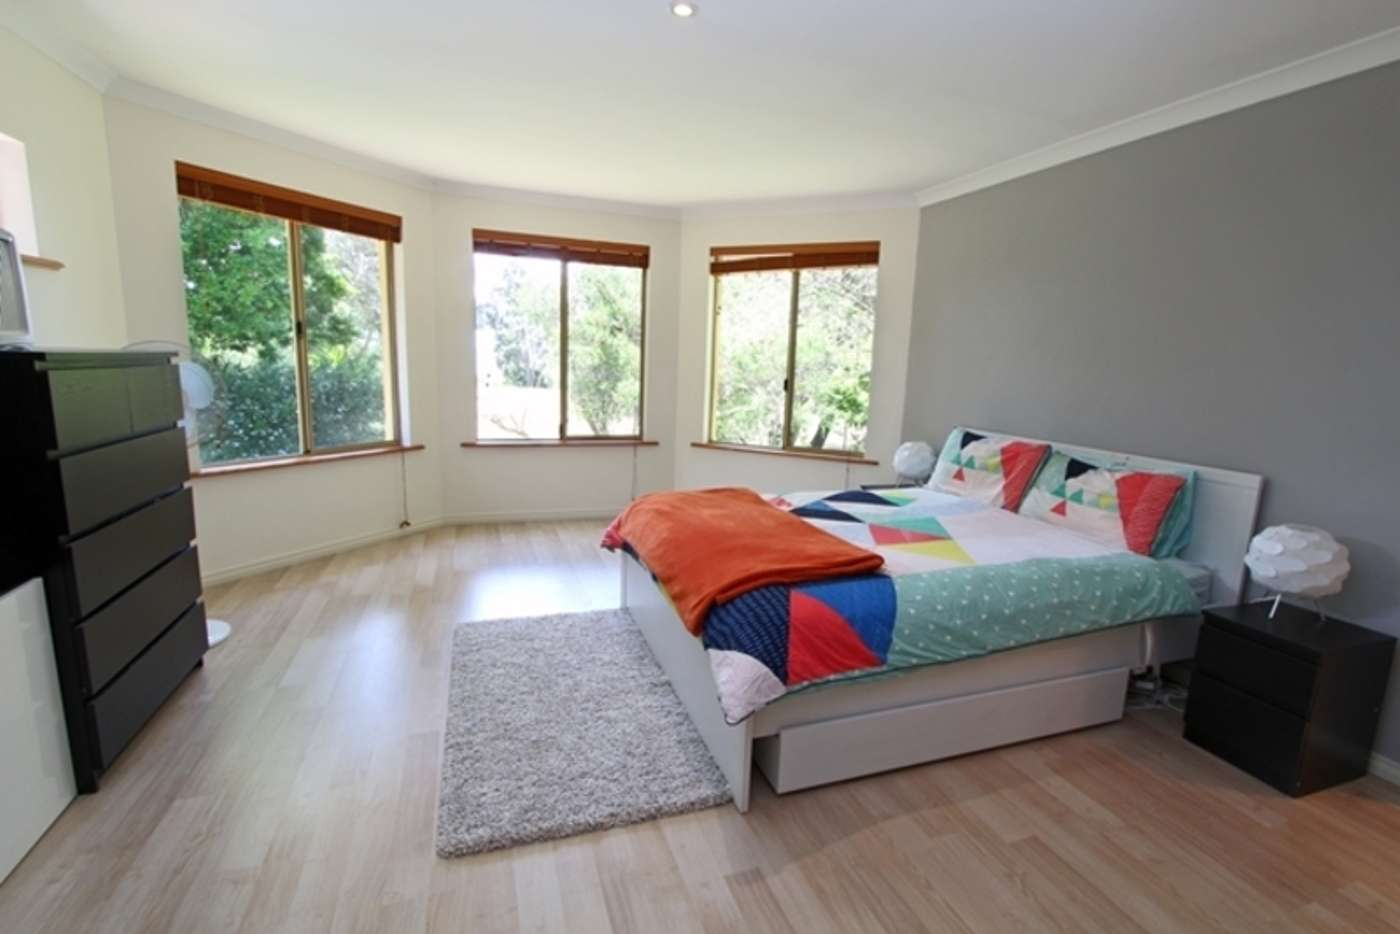 Sixth view of Homely house listing, 16 Lunan Road, Denmark WA 6333